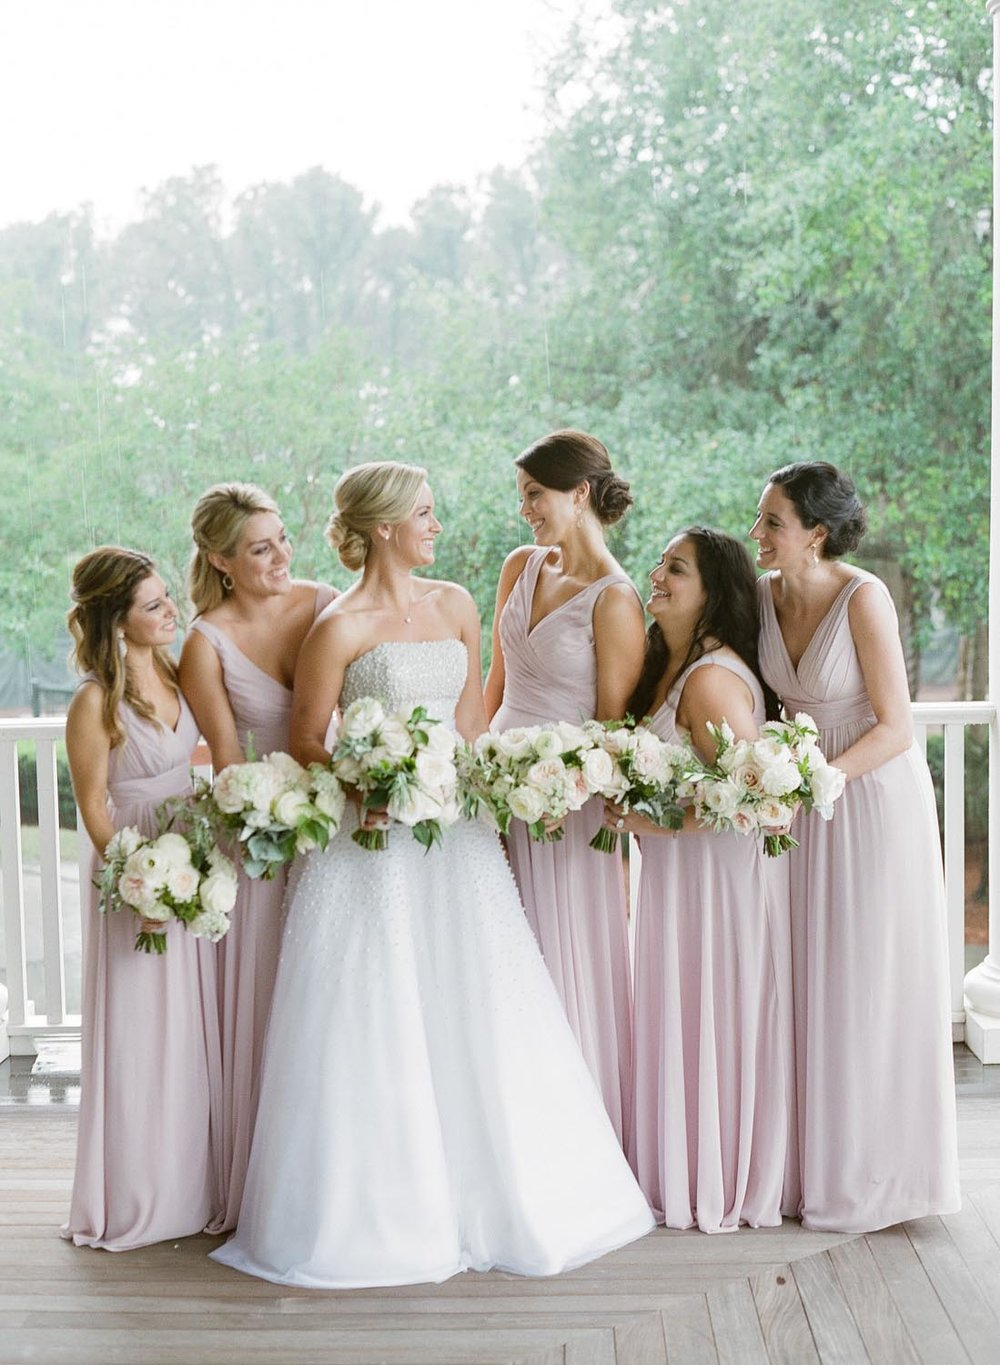 Flowy bridesmaid dresses. Light peach and taupe wedding design. Wedding planning and design by A Charleston Bride.